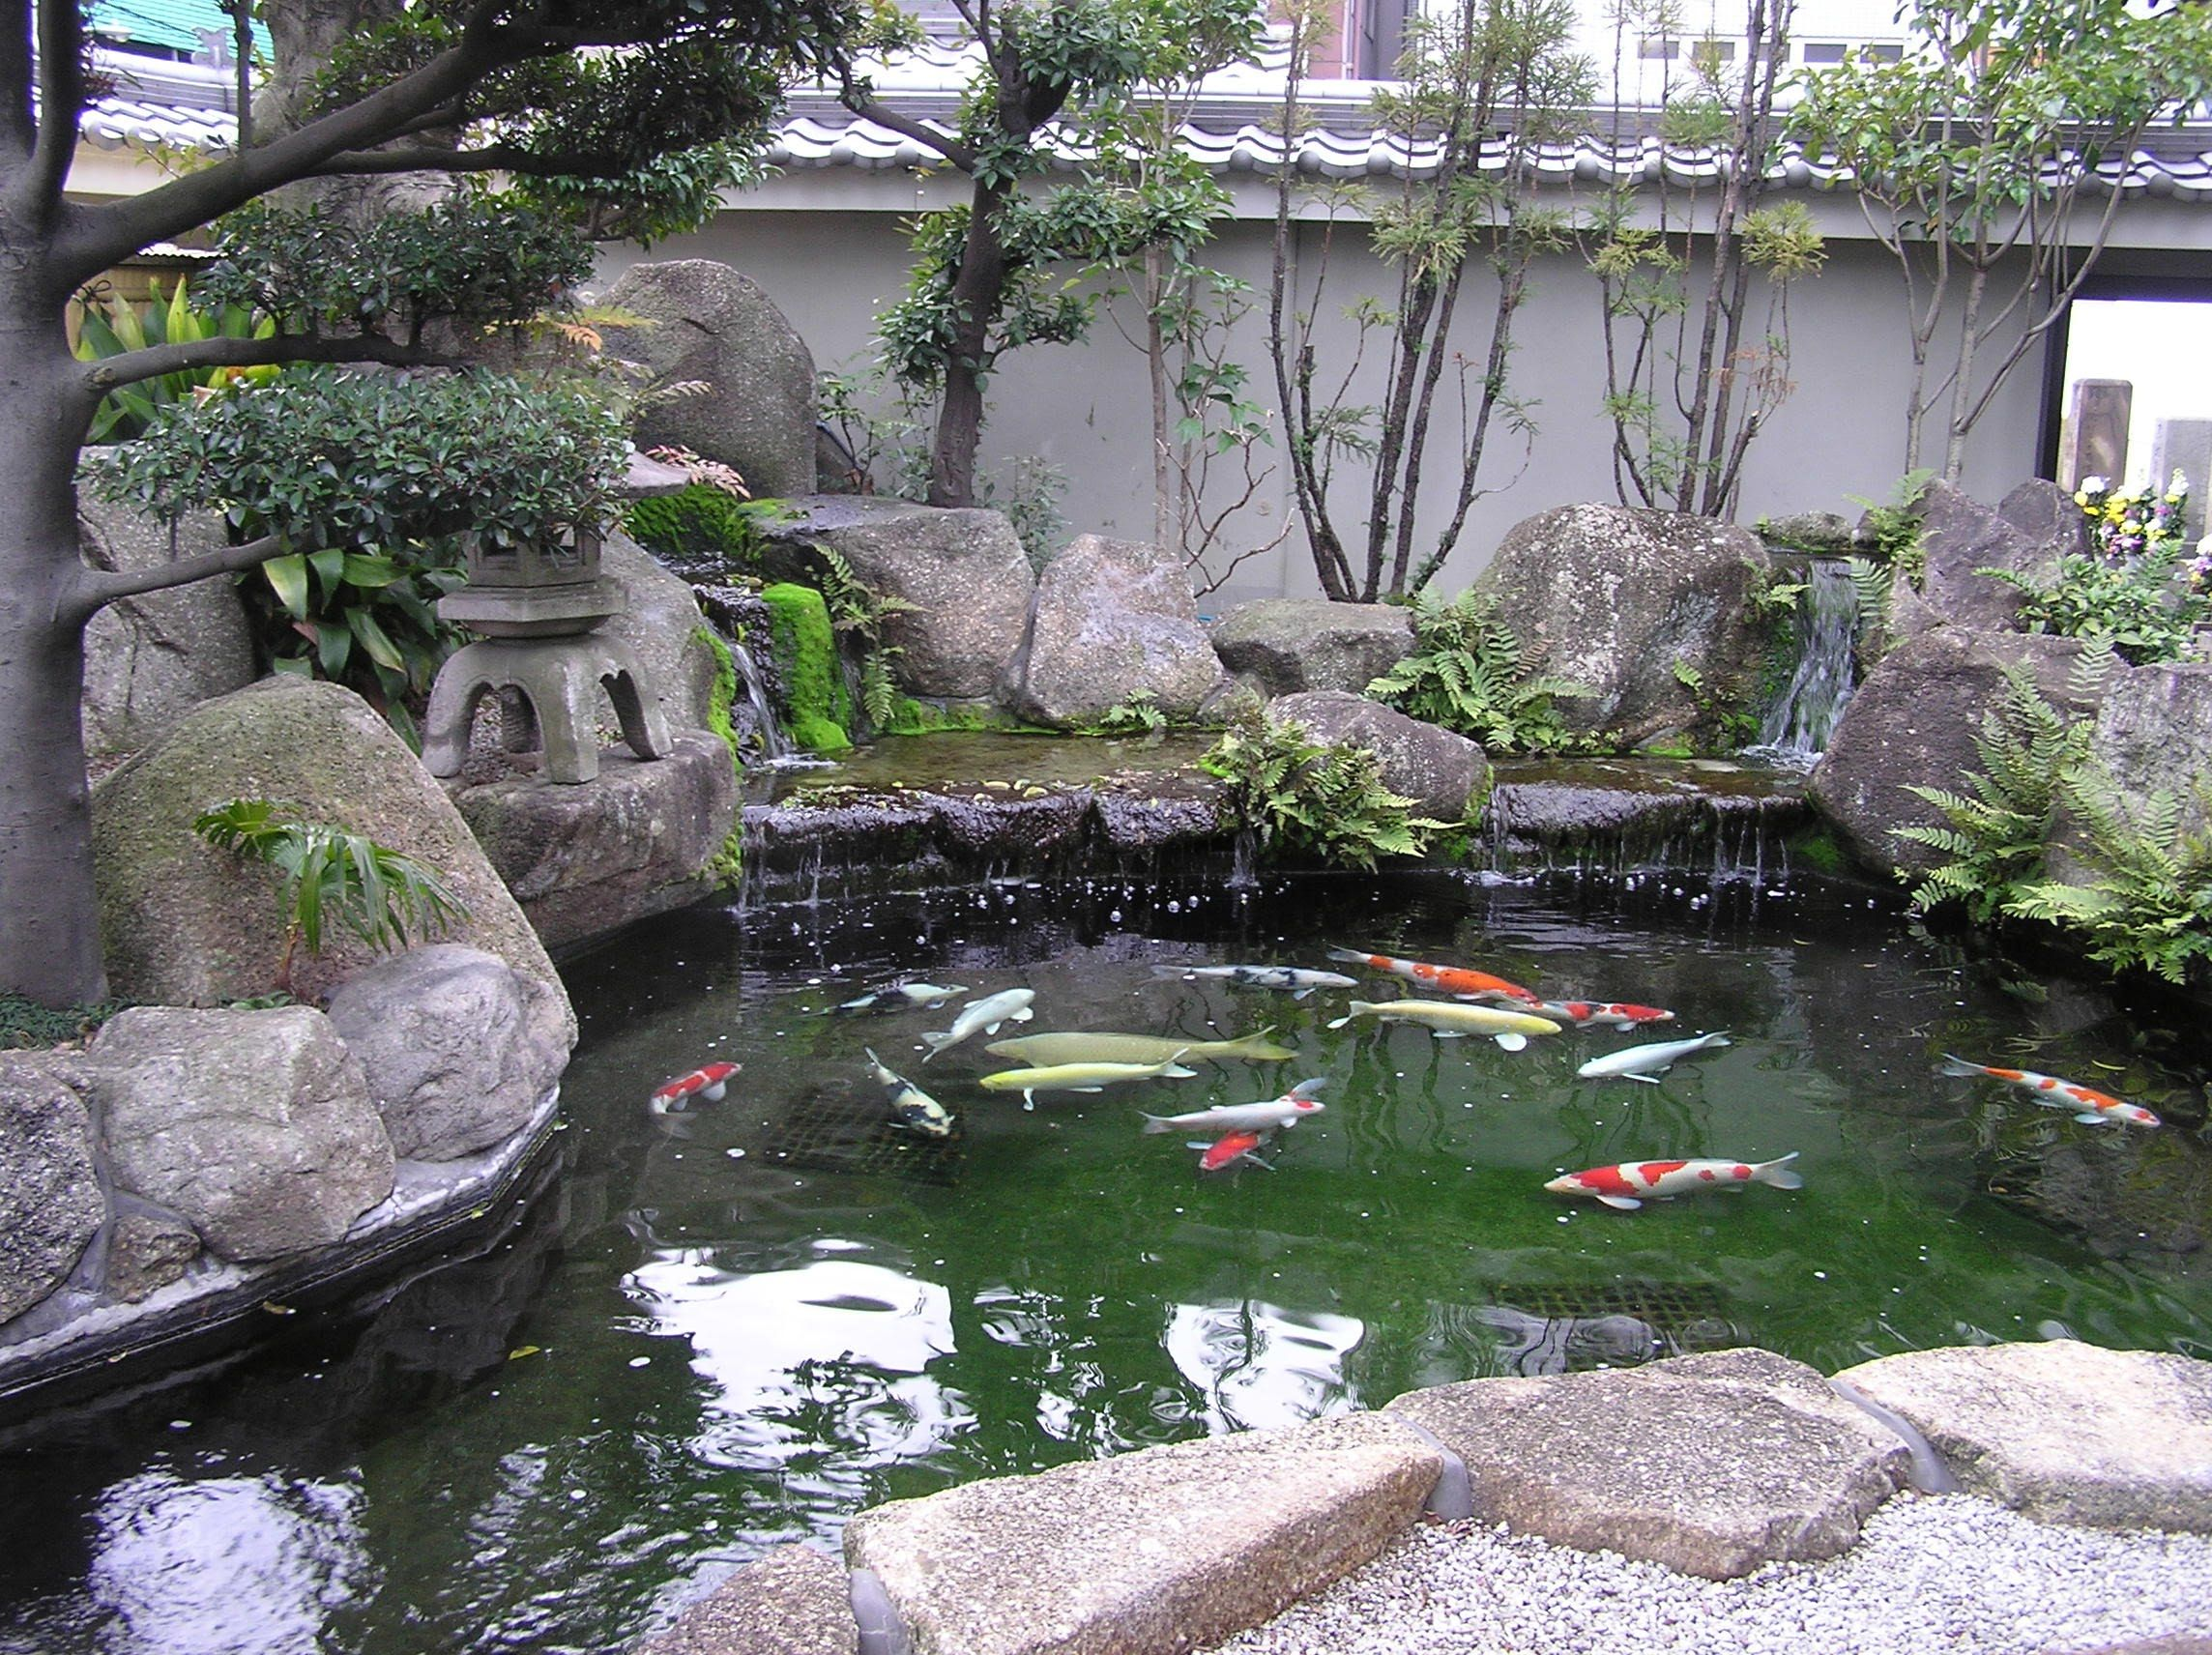 Pin by kc brady on project 3 pond diorama reference for Japanese style pond